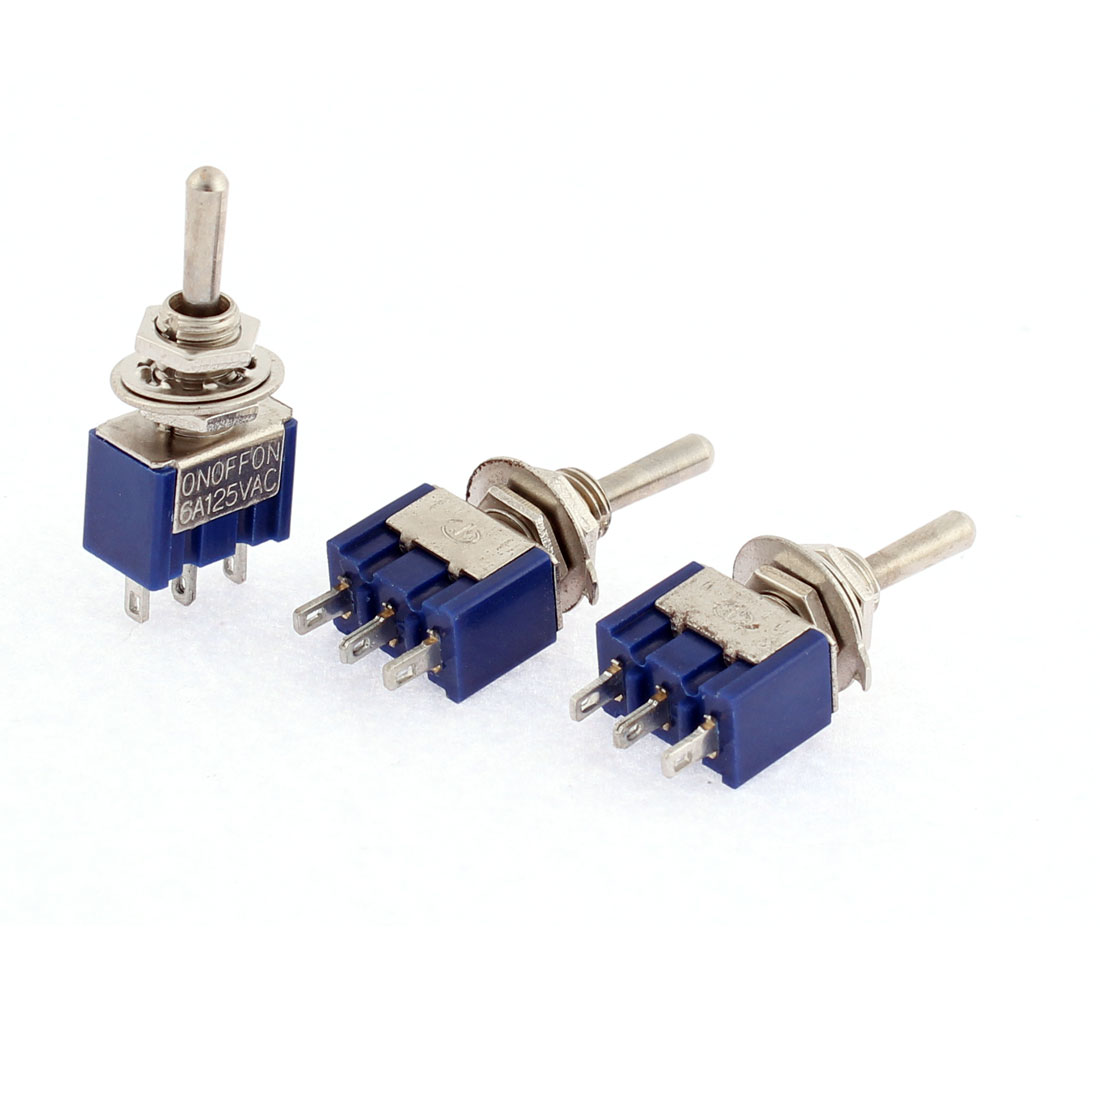 3pcs 3 Terminals SPDT On/Off/On Toggle Switch Blue AC 125V 6A